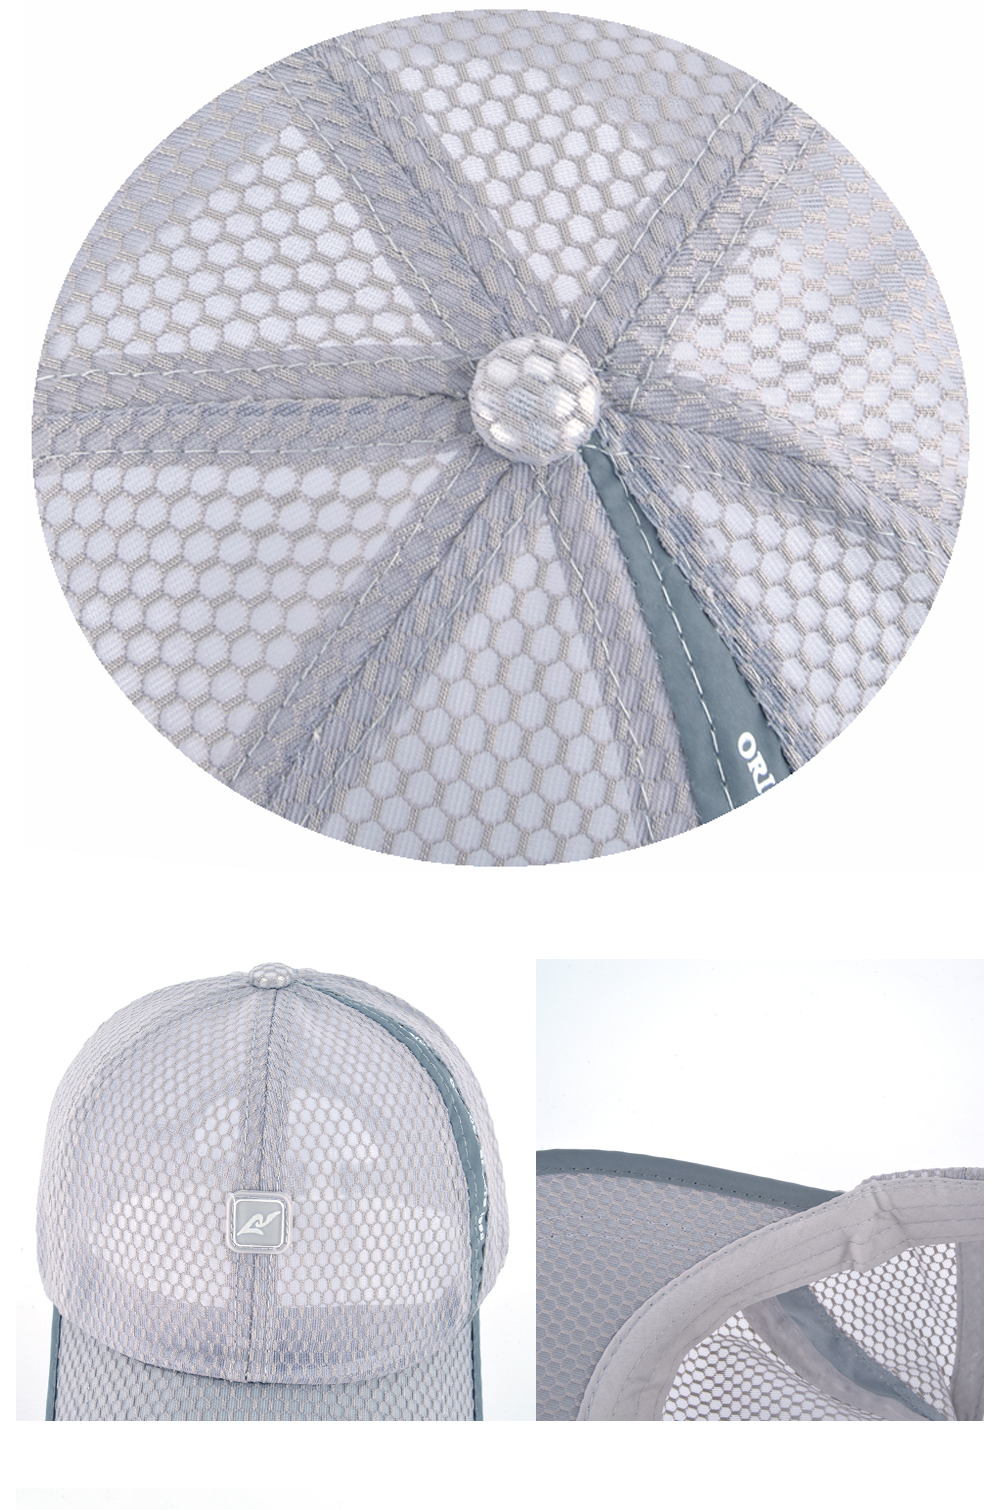 Open Mesh Breathable Baseball Cap - Button Top, Front Cap and Brim Stitching Detail Views